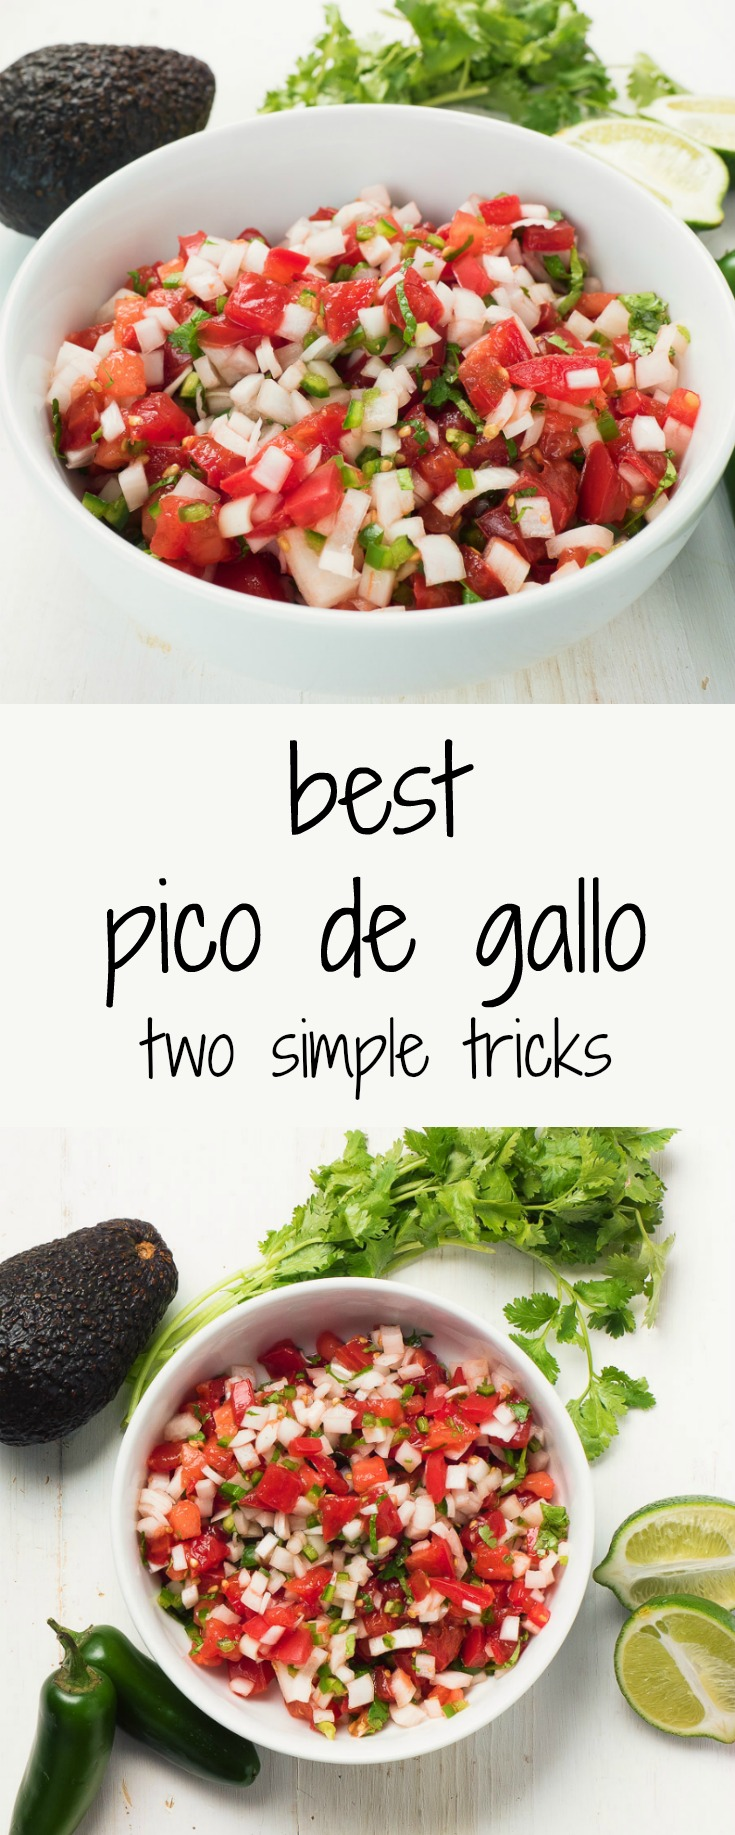 Two simple tricks to make the better pico de gallo